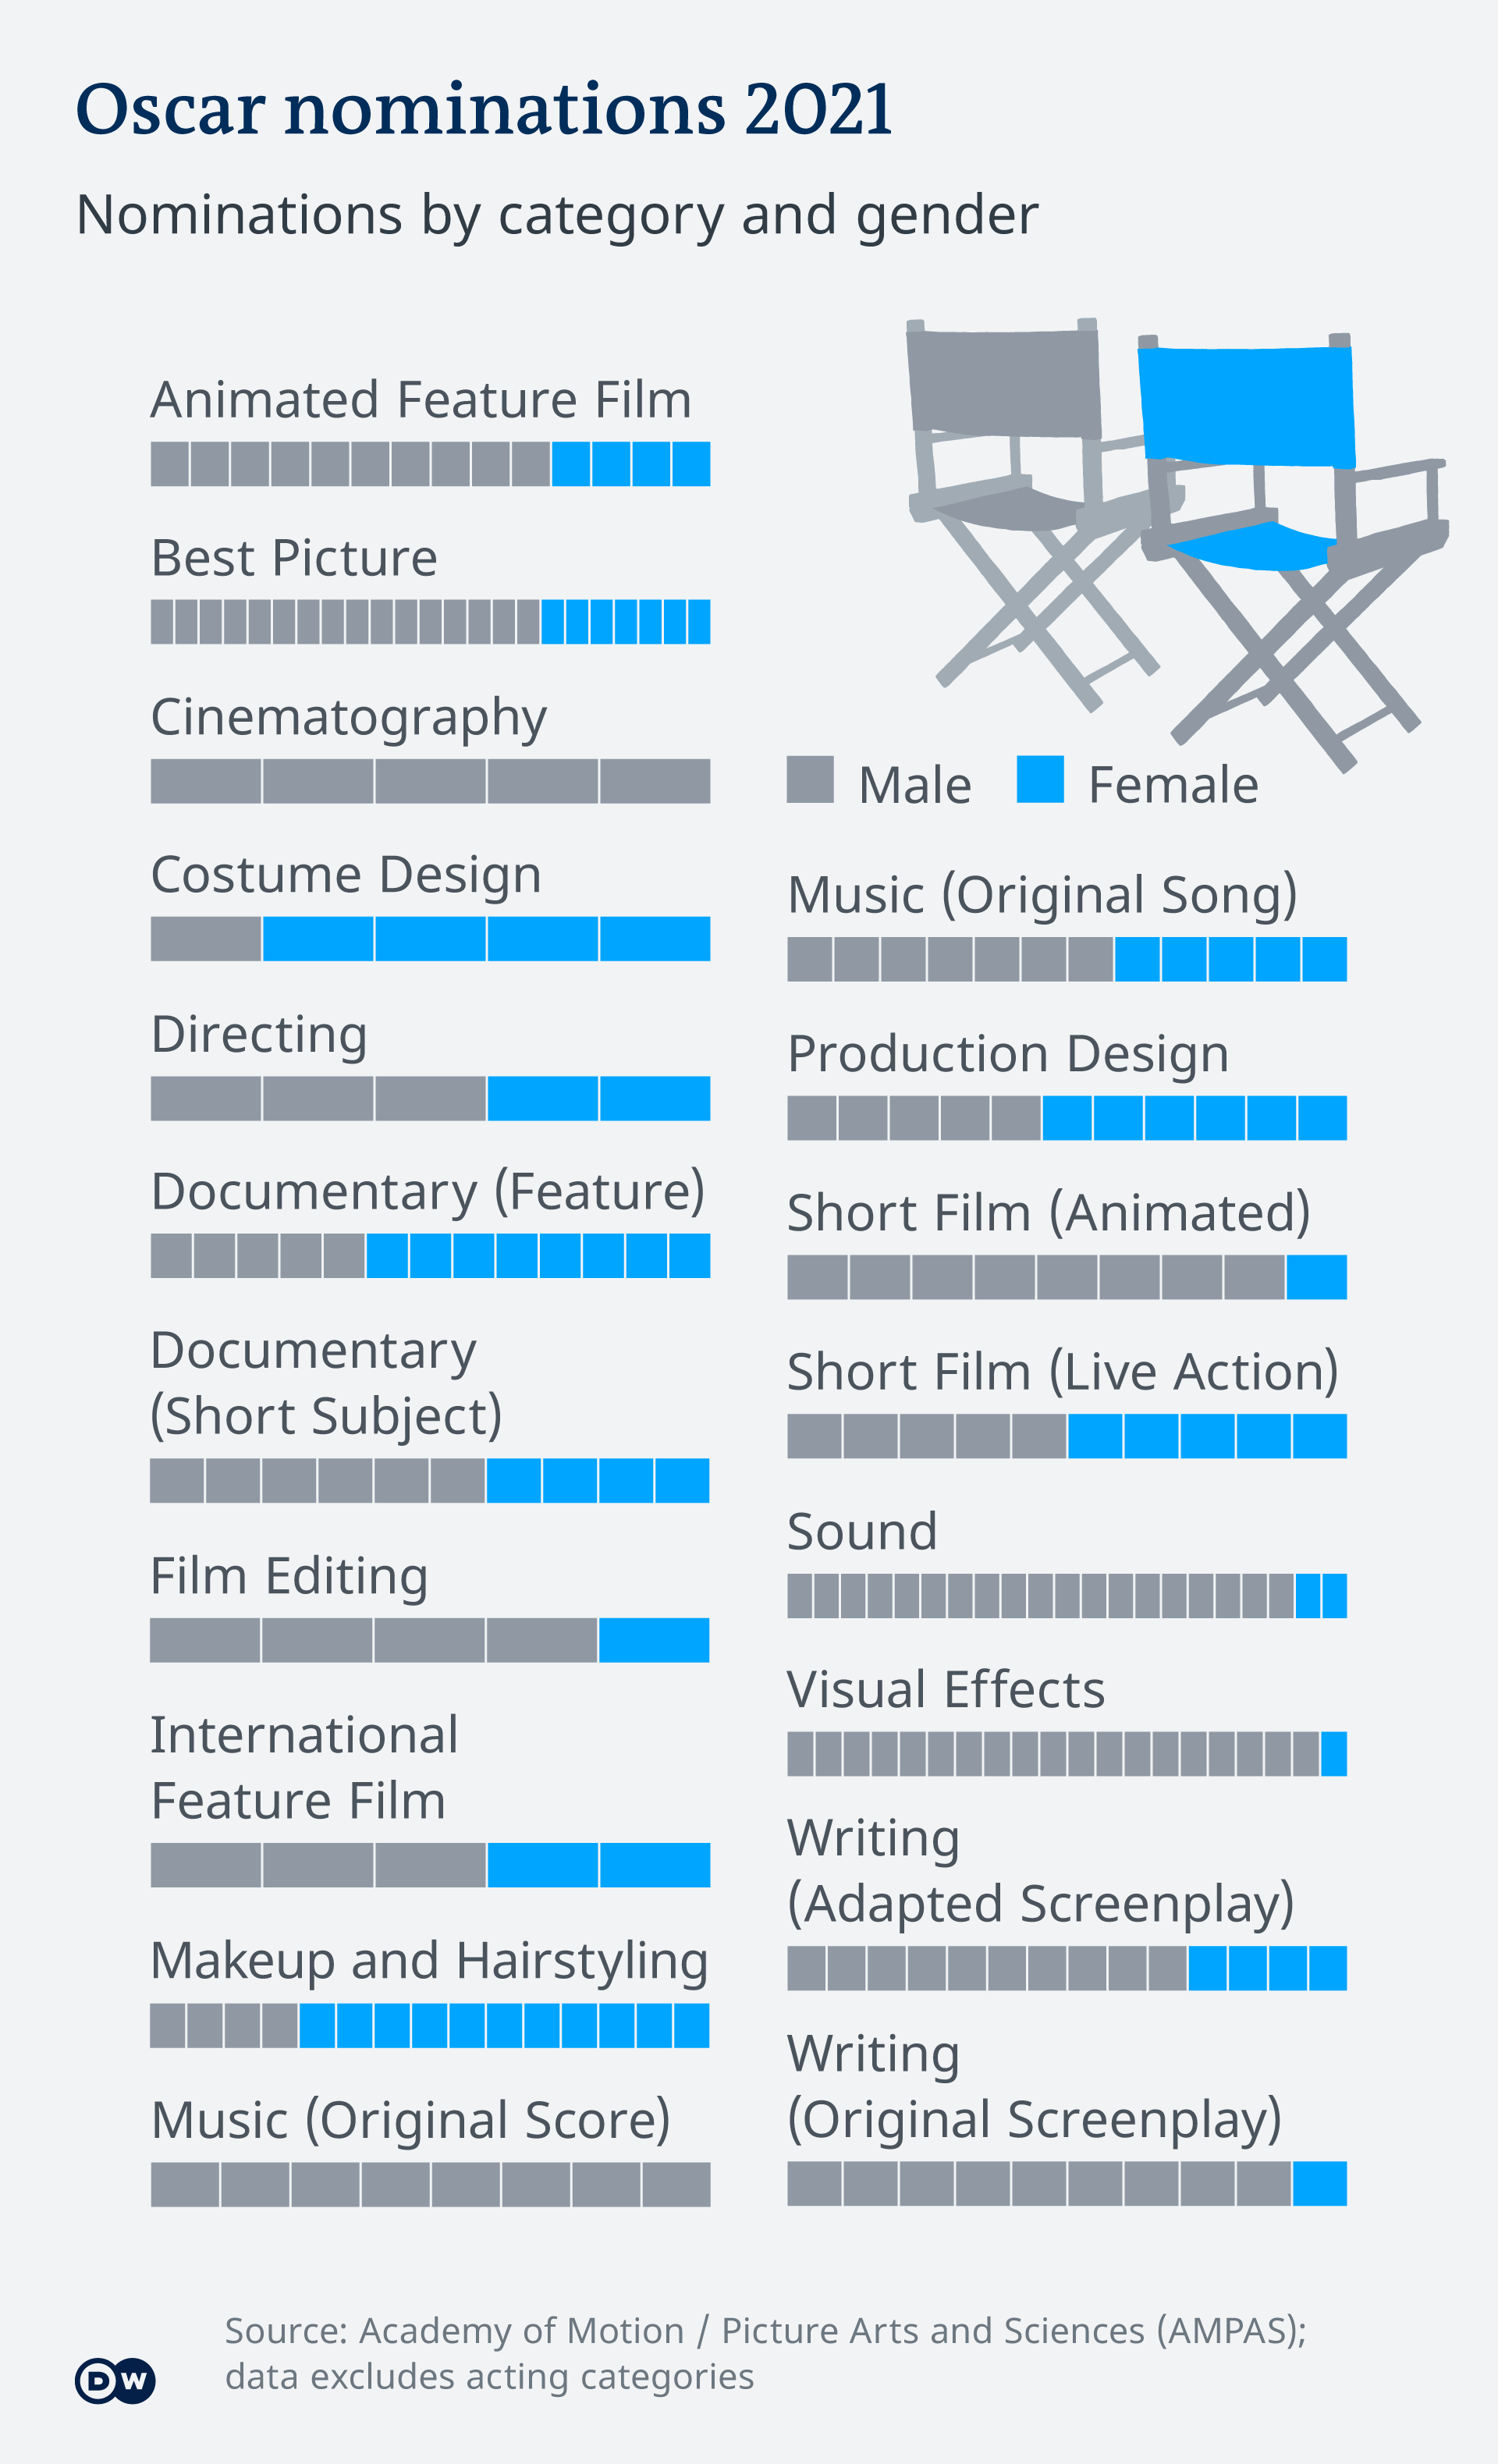 Oscar 2021 nominations by gender and category